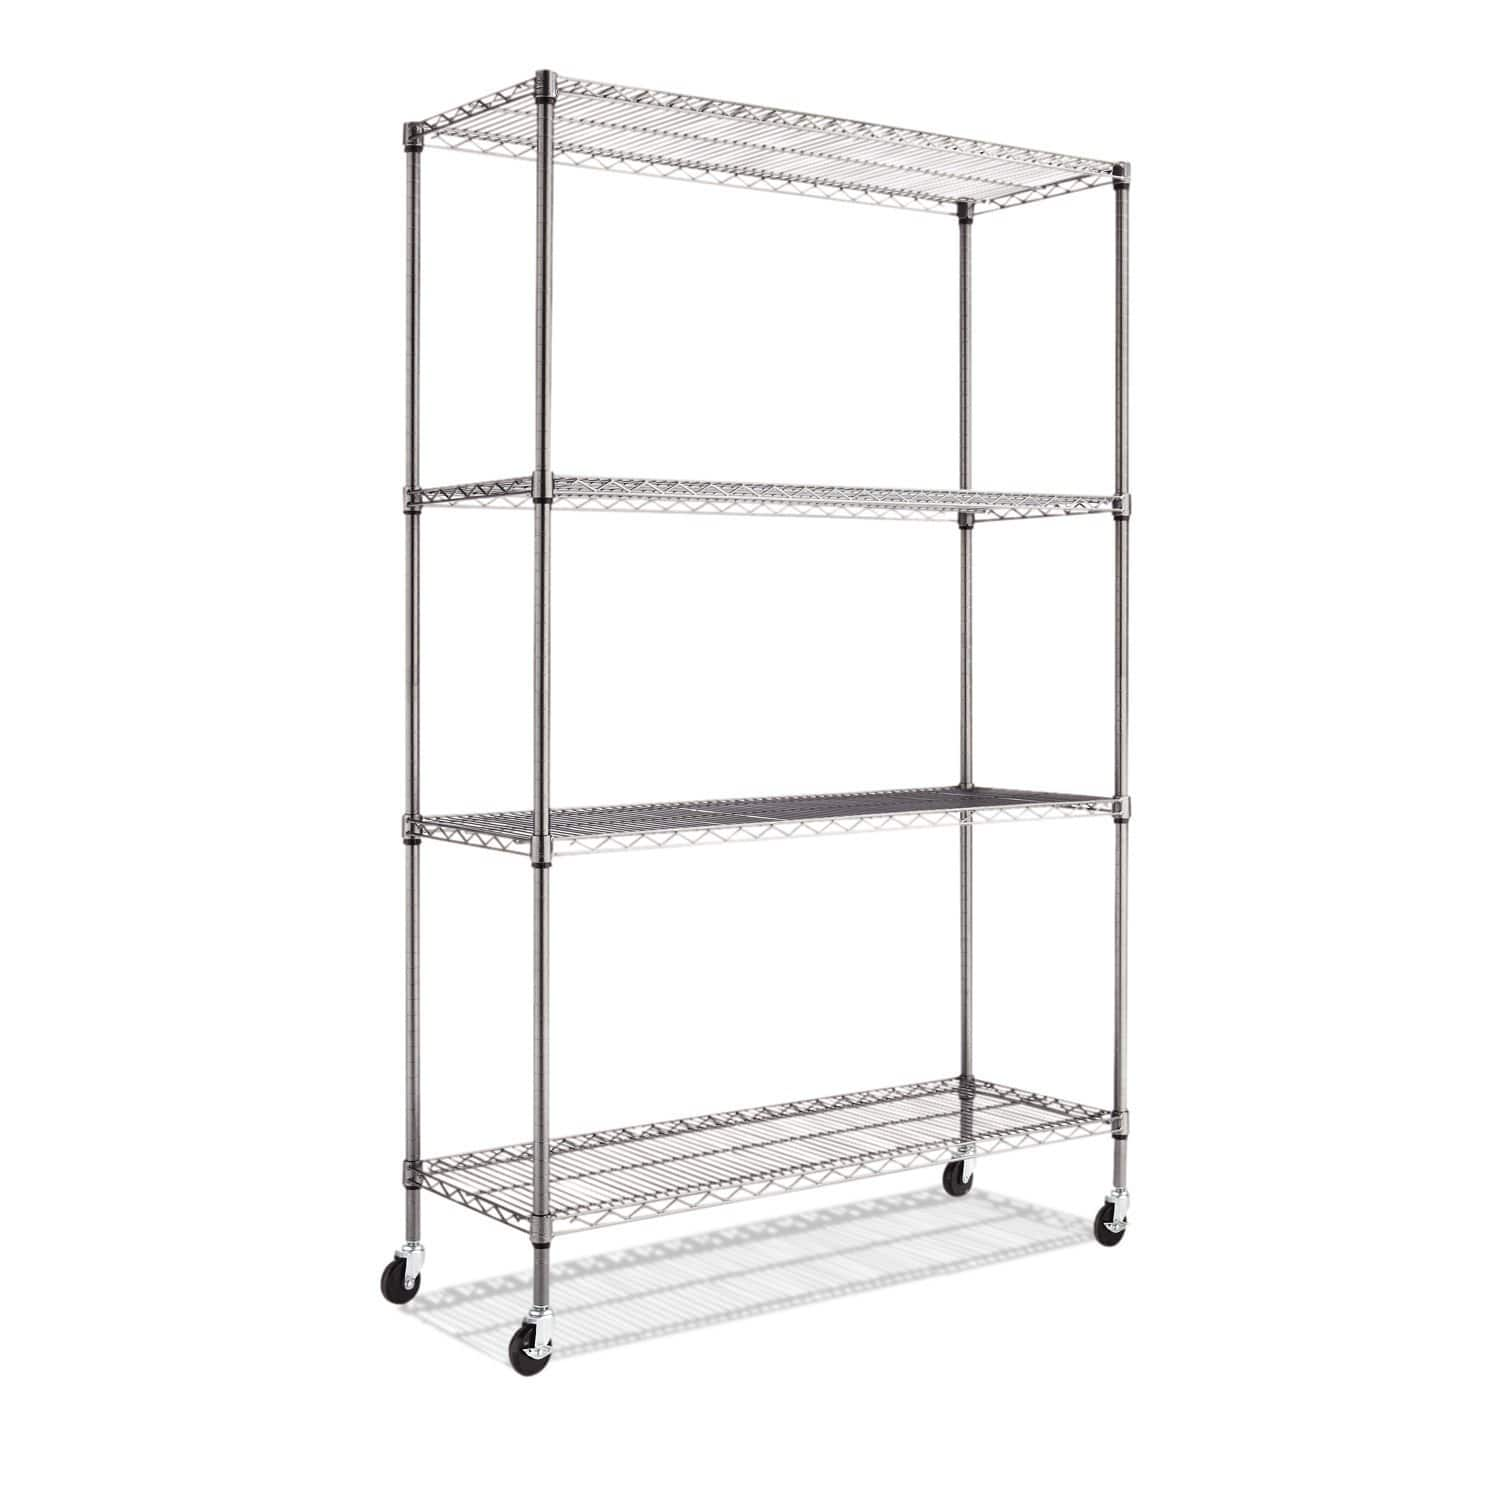 "COSTCO or AMAZON - Alera 4-Shelf Wire Shelving Rack, 48"" x 18"" 72"", NSF, Black Anthracite $79.99 shipped"